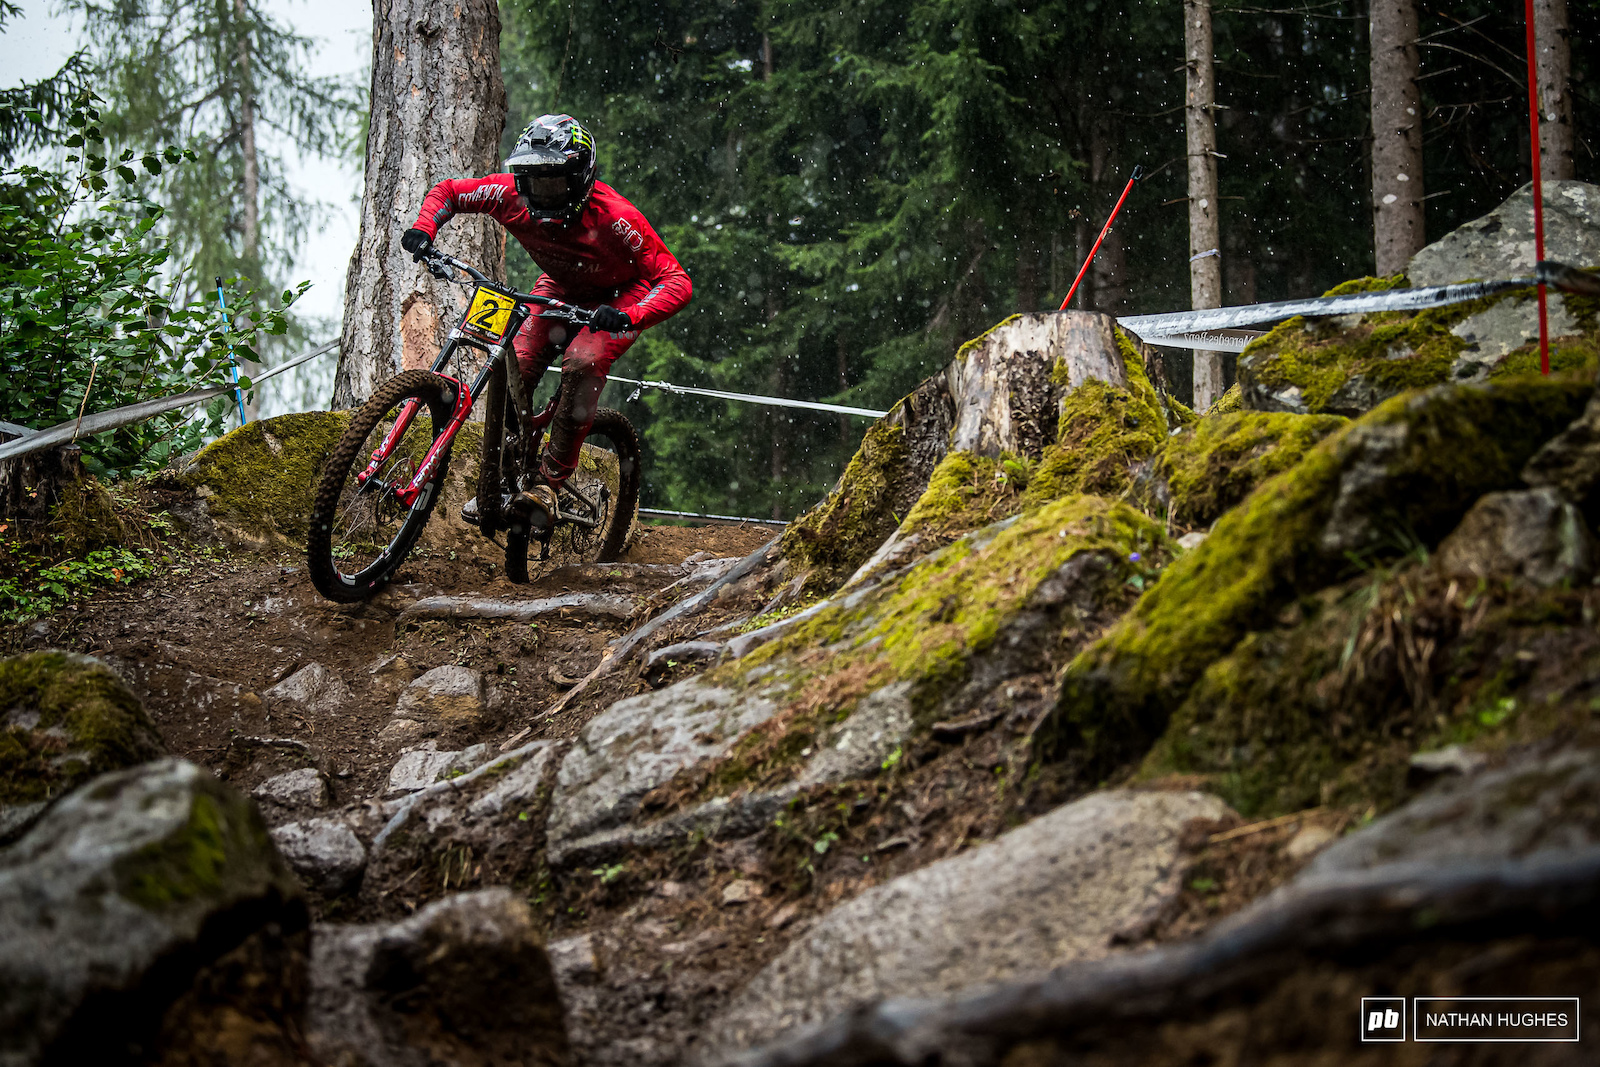 Some of the heaviest rain fell while Amaury Pierron was on the hill and even that could only hold him back as far as 5th place.